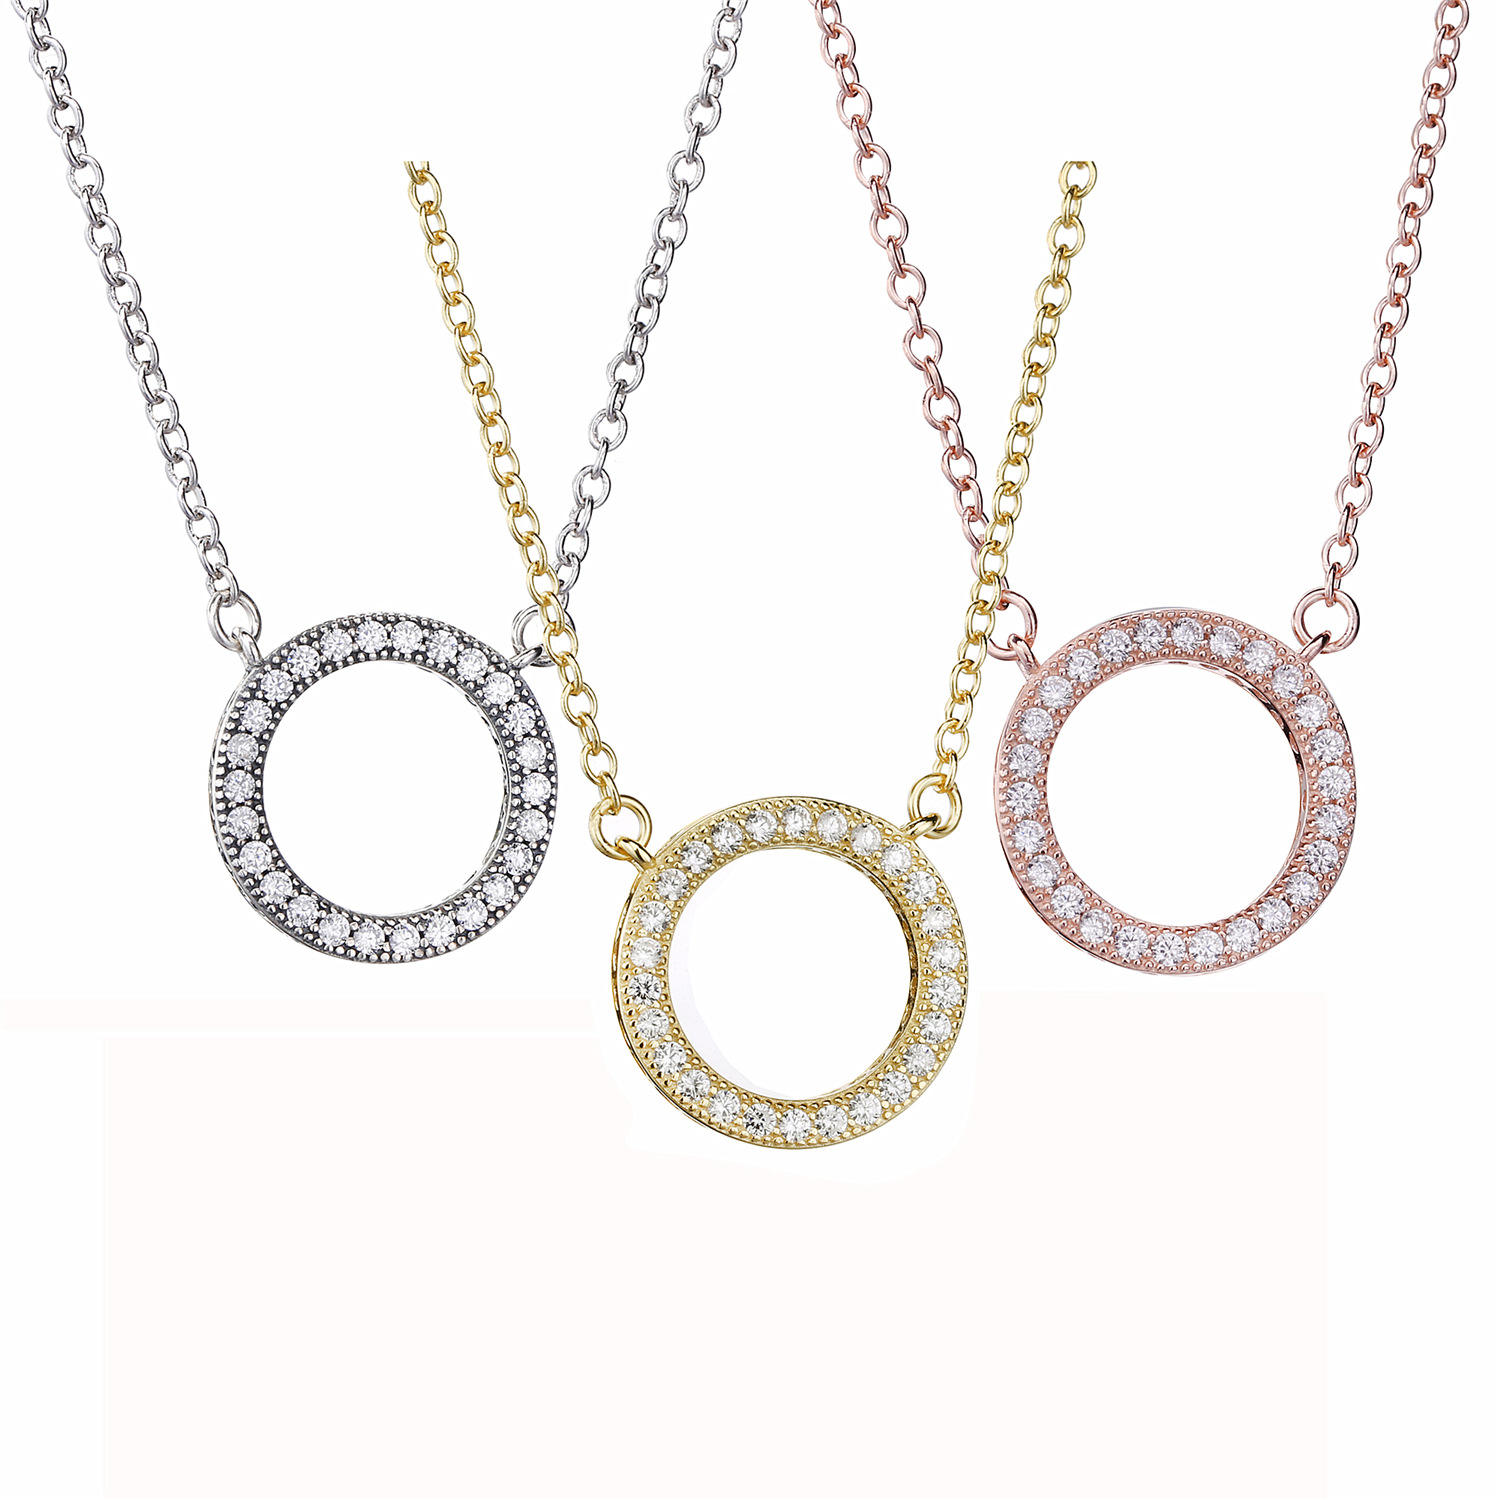 Quality assurance gold silver rose gold pendant necklace fashion Pave Circle Collier Necklace